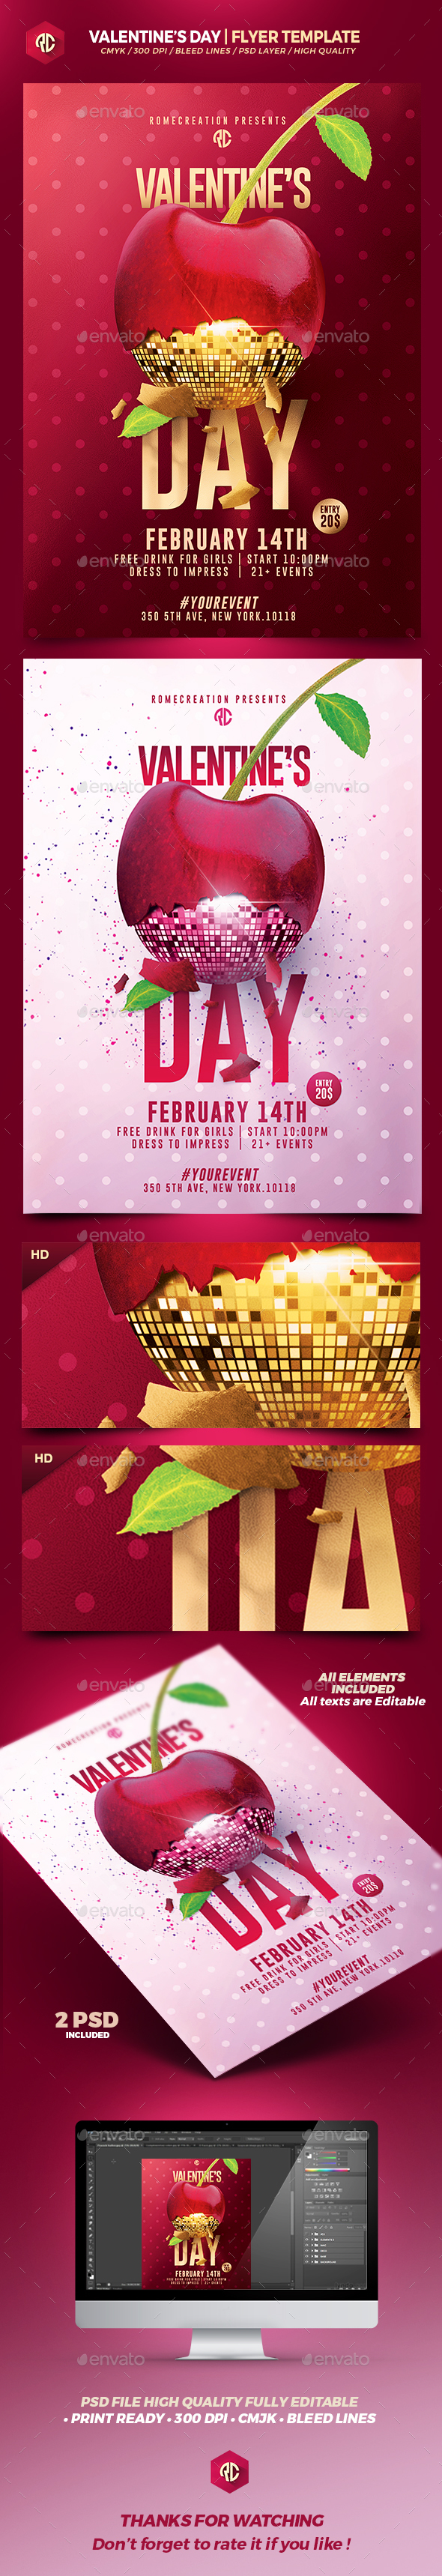 Valentine's Day | 2 Psd Flyer Templates - Flyers Print Templates